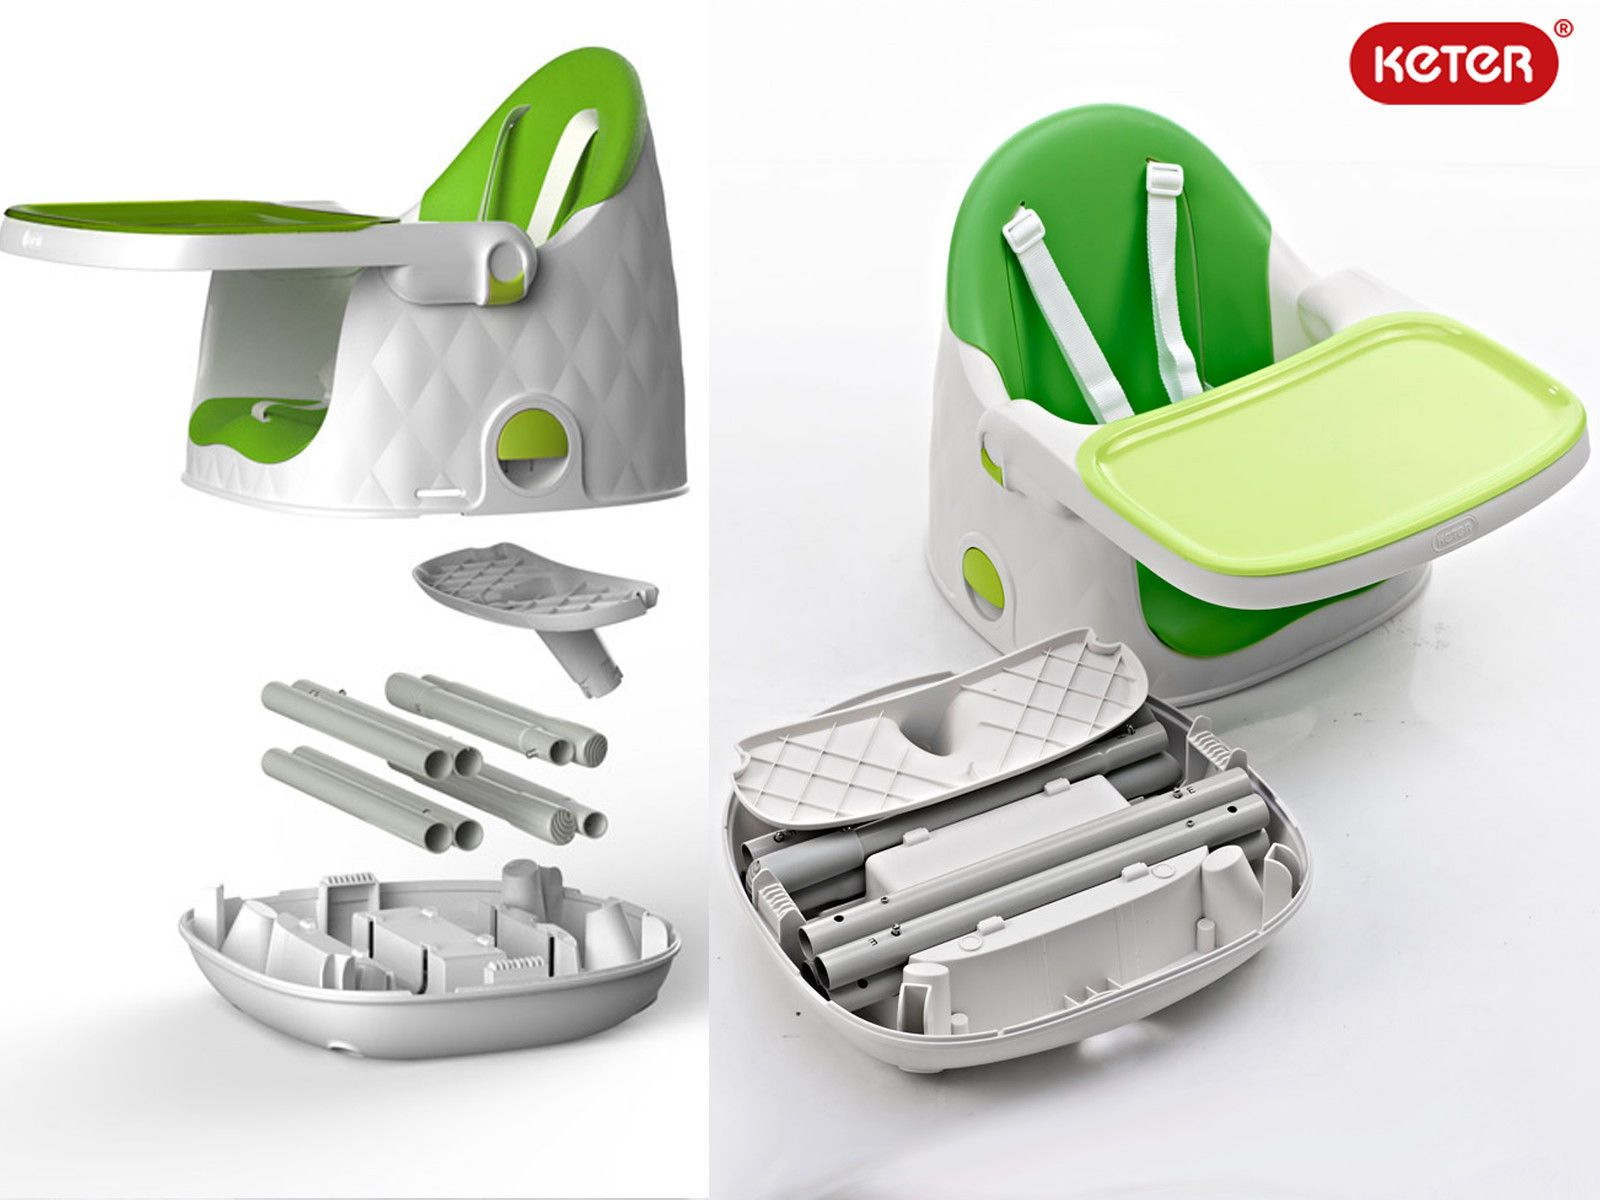 Groovy Discount On Keter Multi Dine High Chair K2016 Chair Pabps2019 Chair Design Images Pabps2019Com